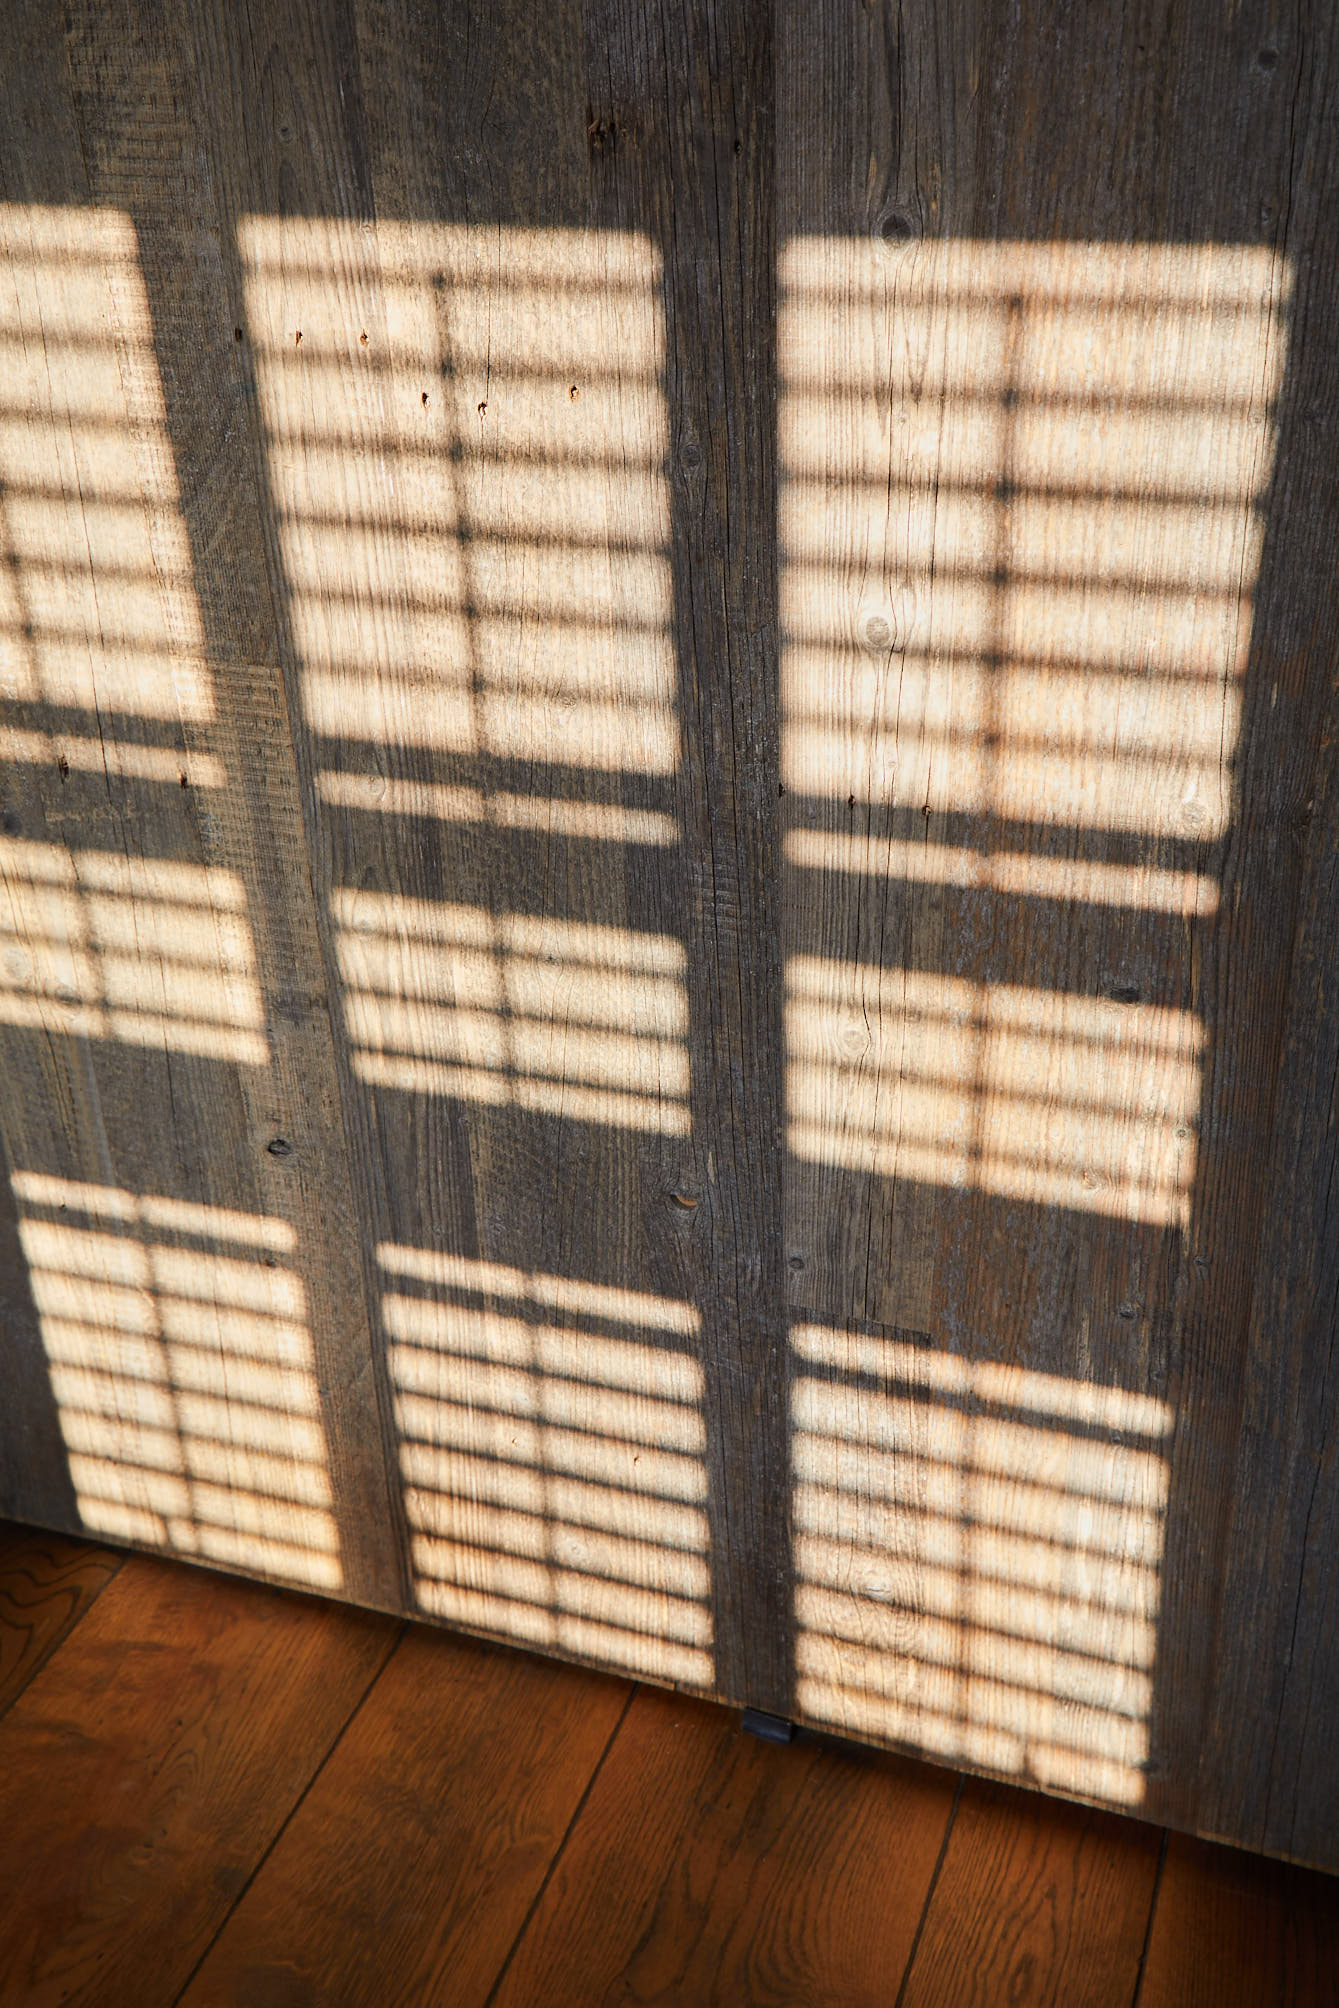 Sunlight hitting reclaimed wood cladding